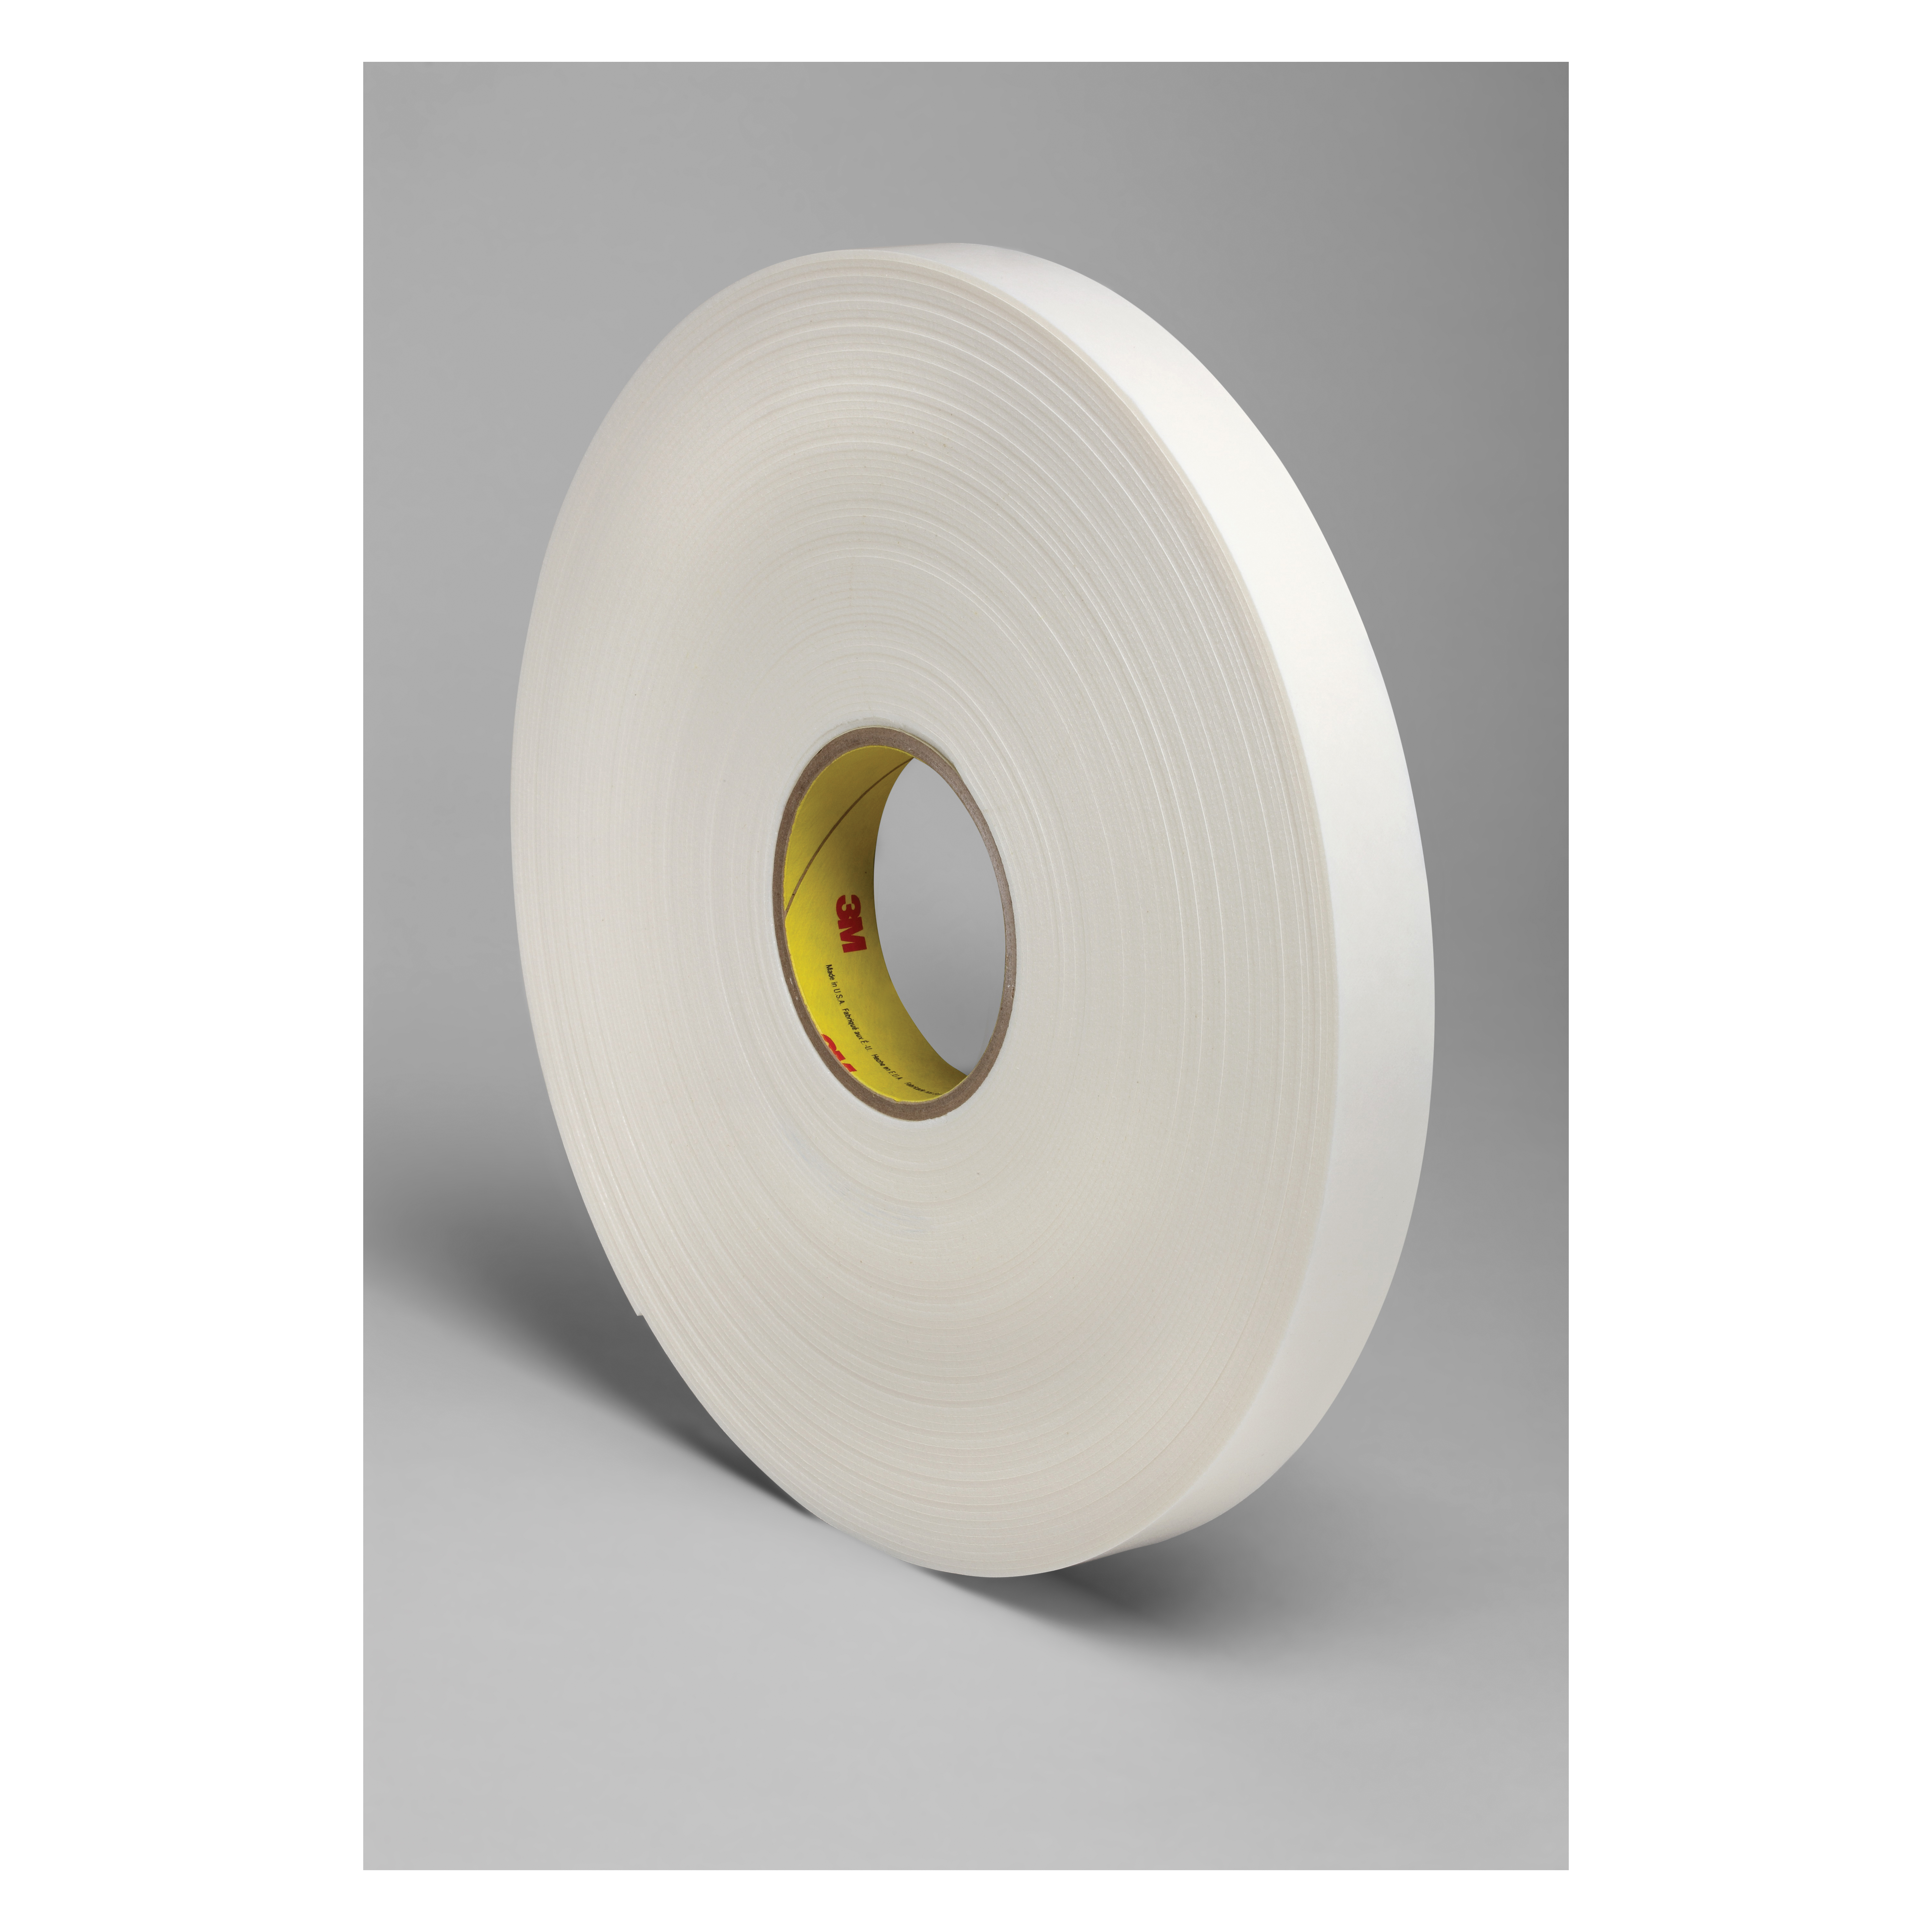 3M™ 021200-24302 Double Coated Tape, 36 yd L x 1 in W, 62 mil THK, Rubber Adhesive, Polyethylene Foam Backing, White